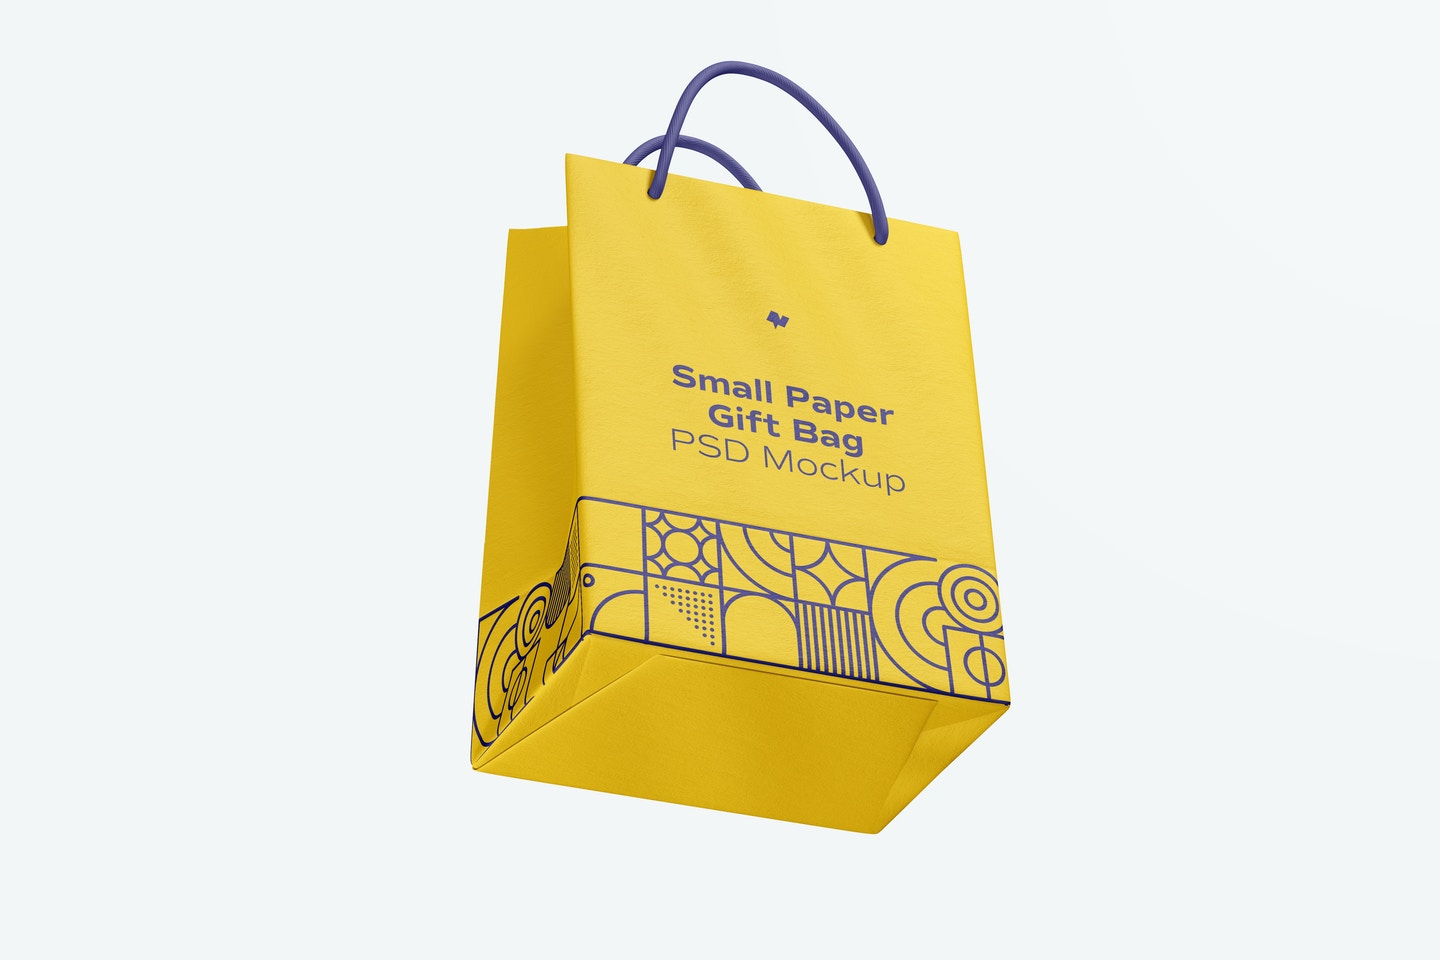 Small Paper Gift Bag With Rope Handle Mockup, Floating